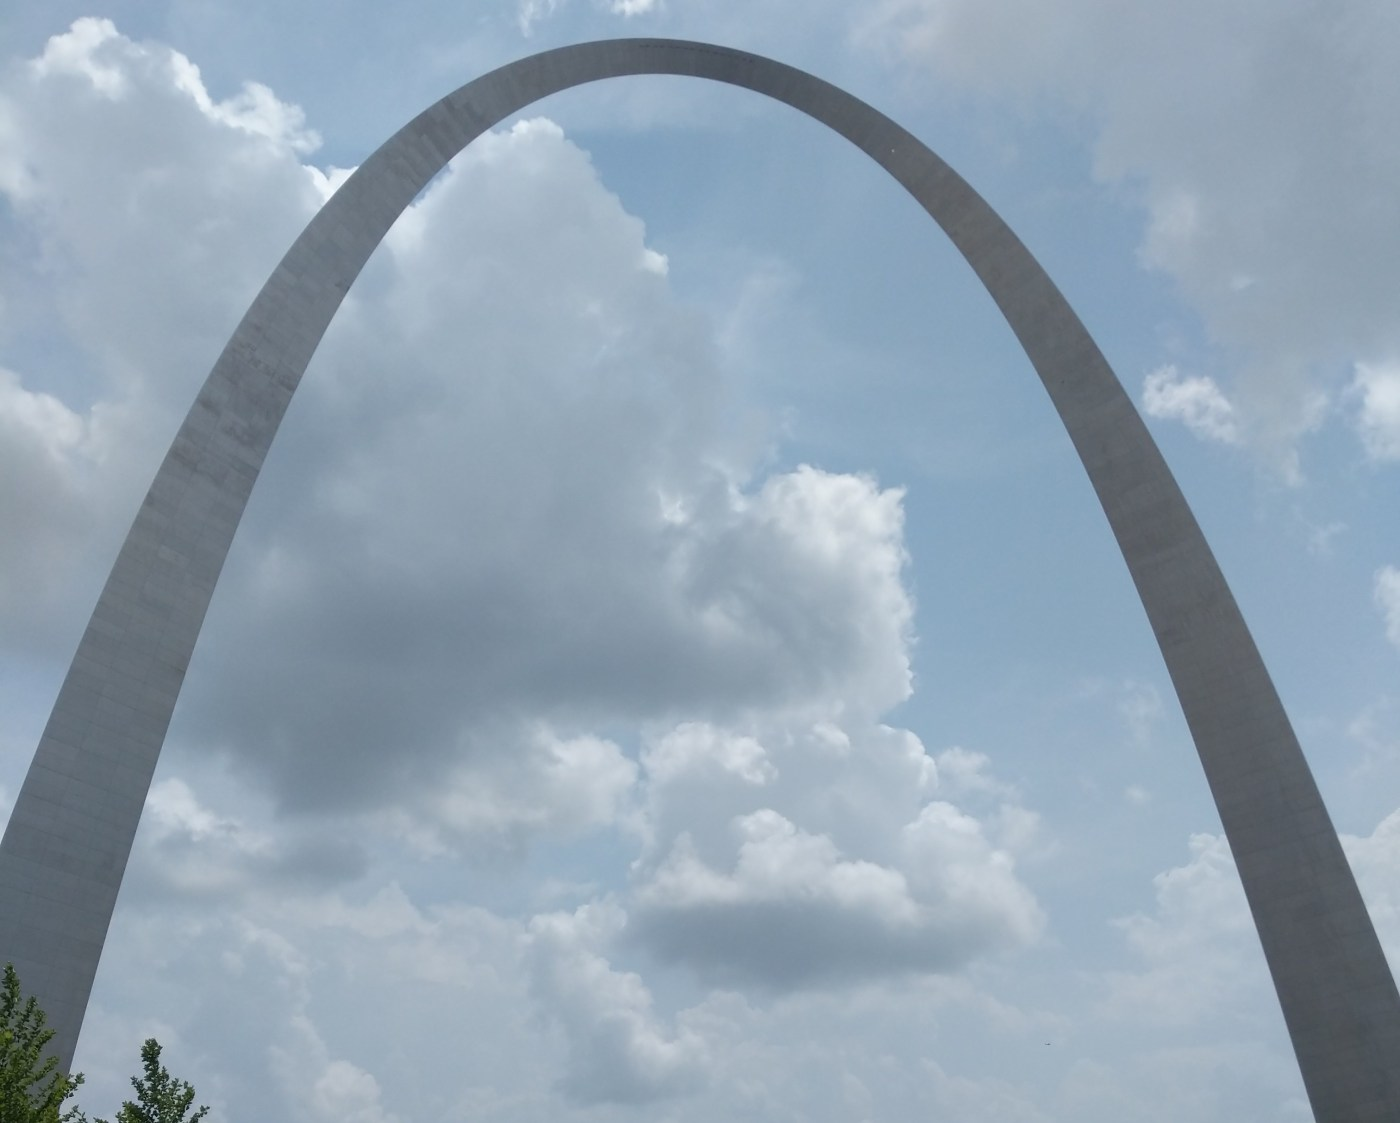 The Gateway arch against the cloudy sky